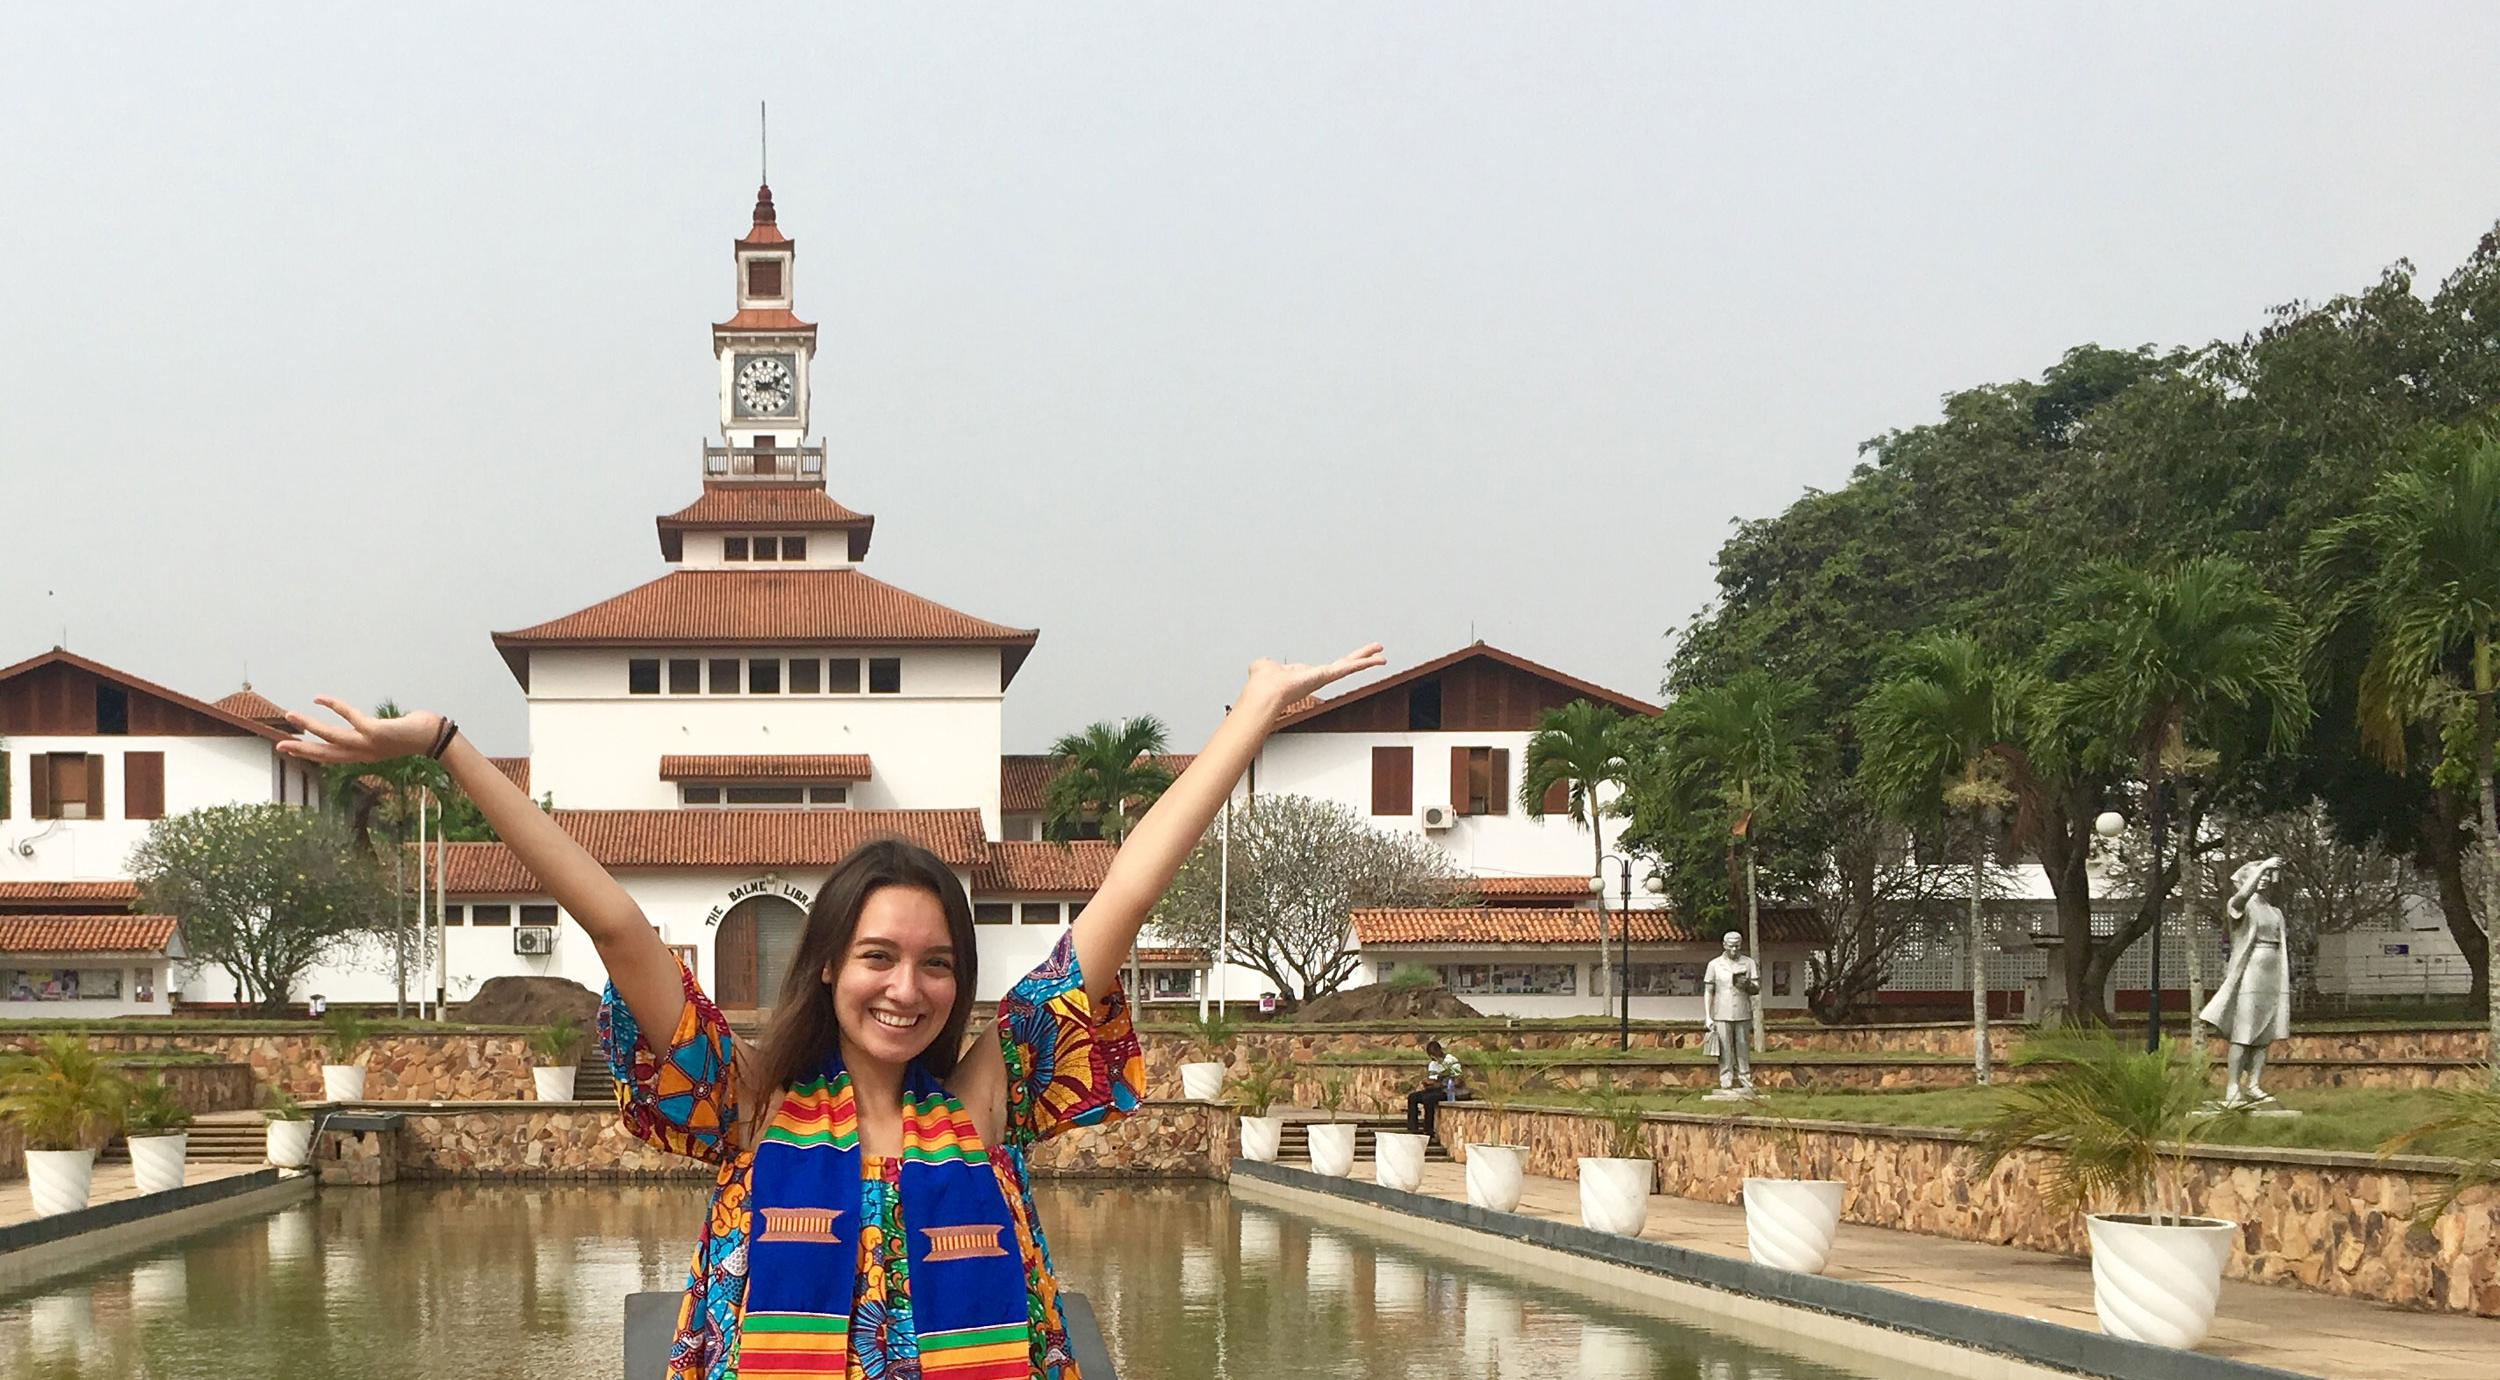 UCEAP student smiling with her arms in the air in Accra, Ghana